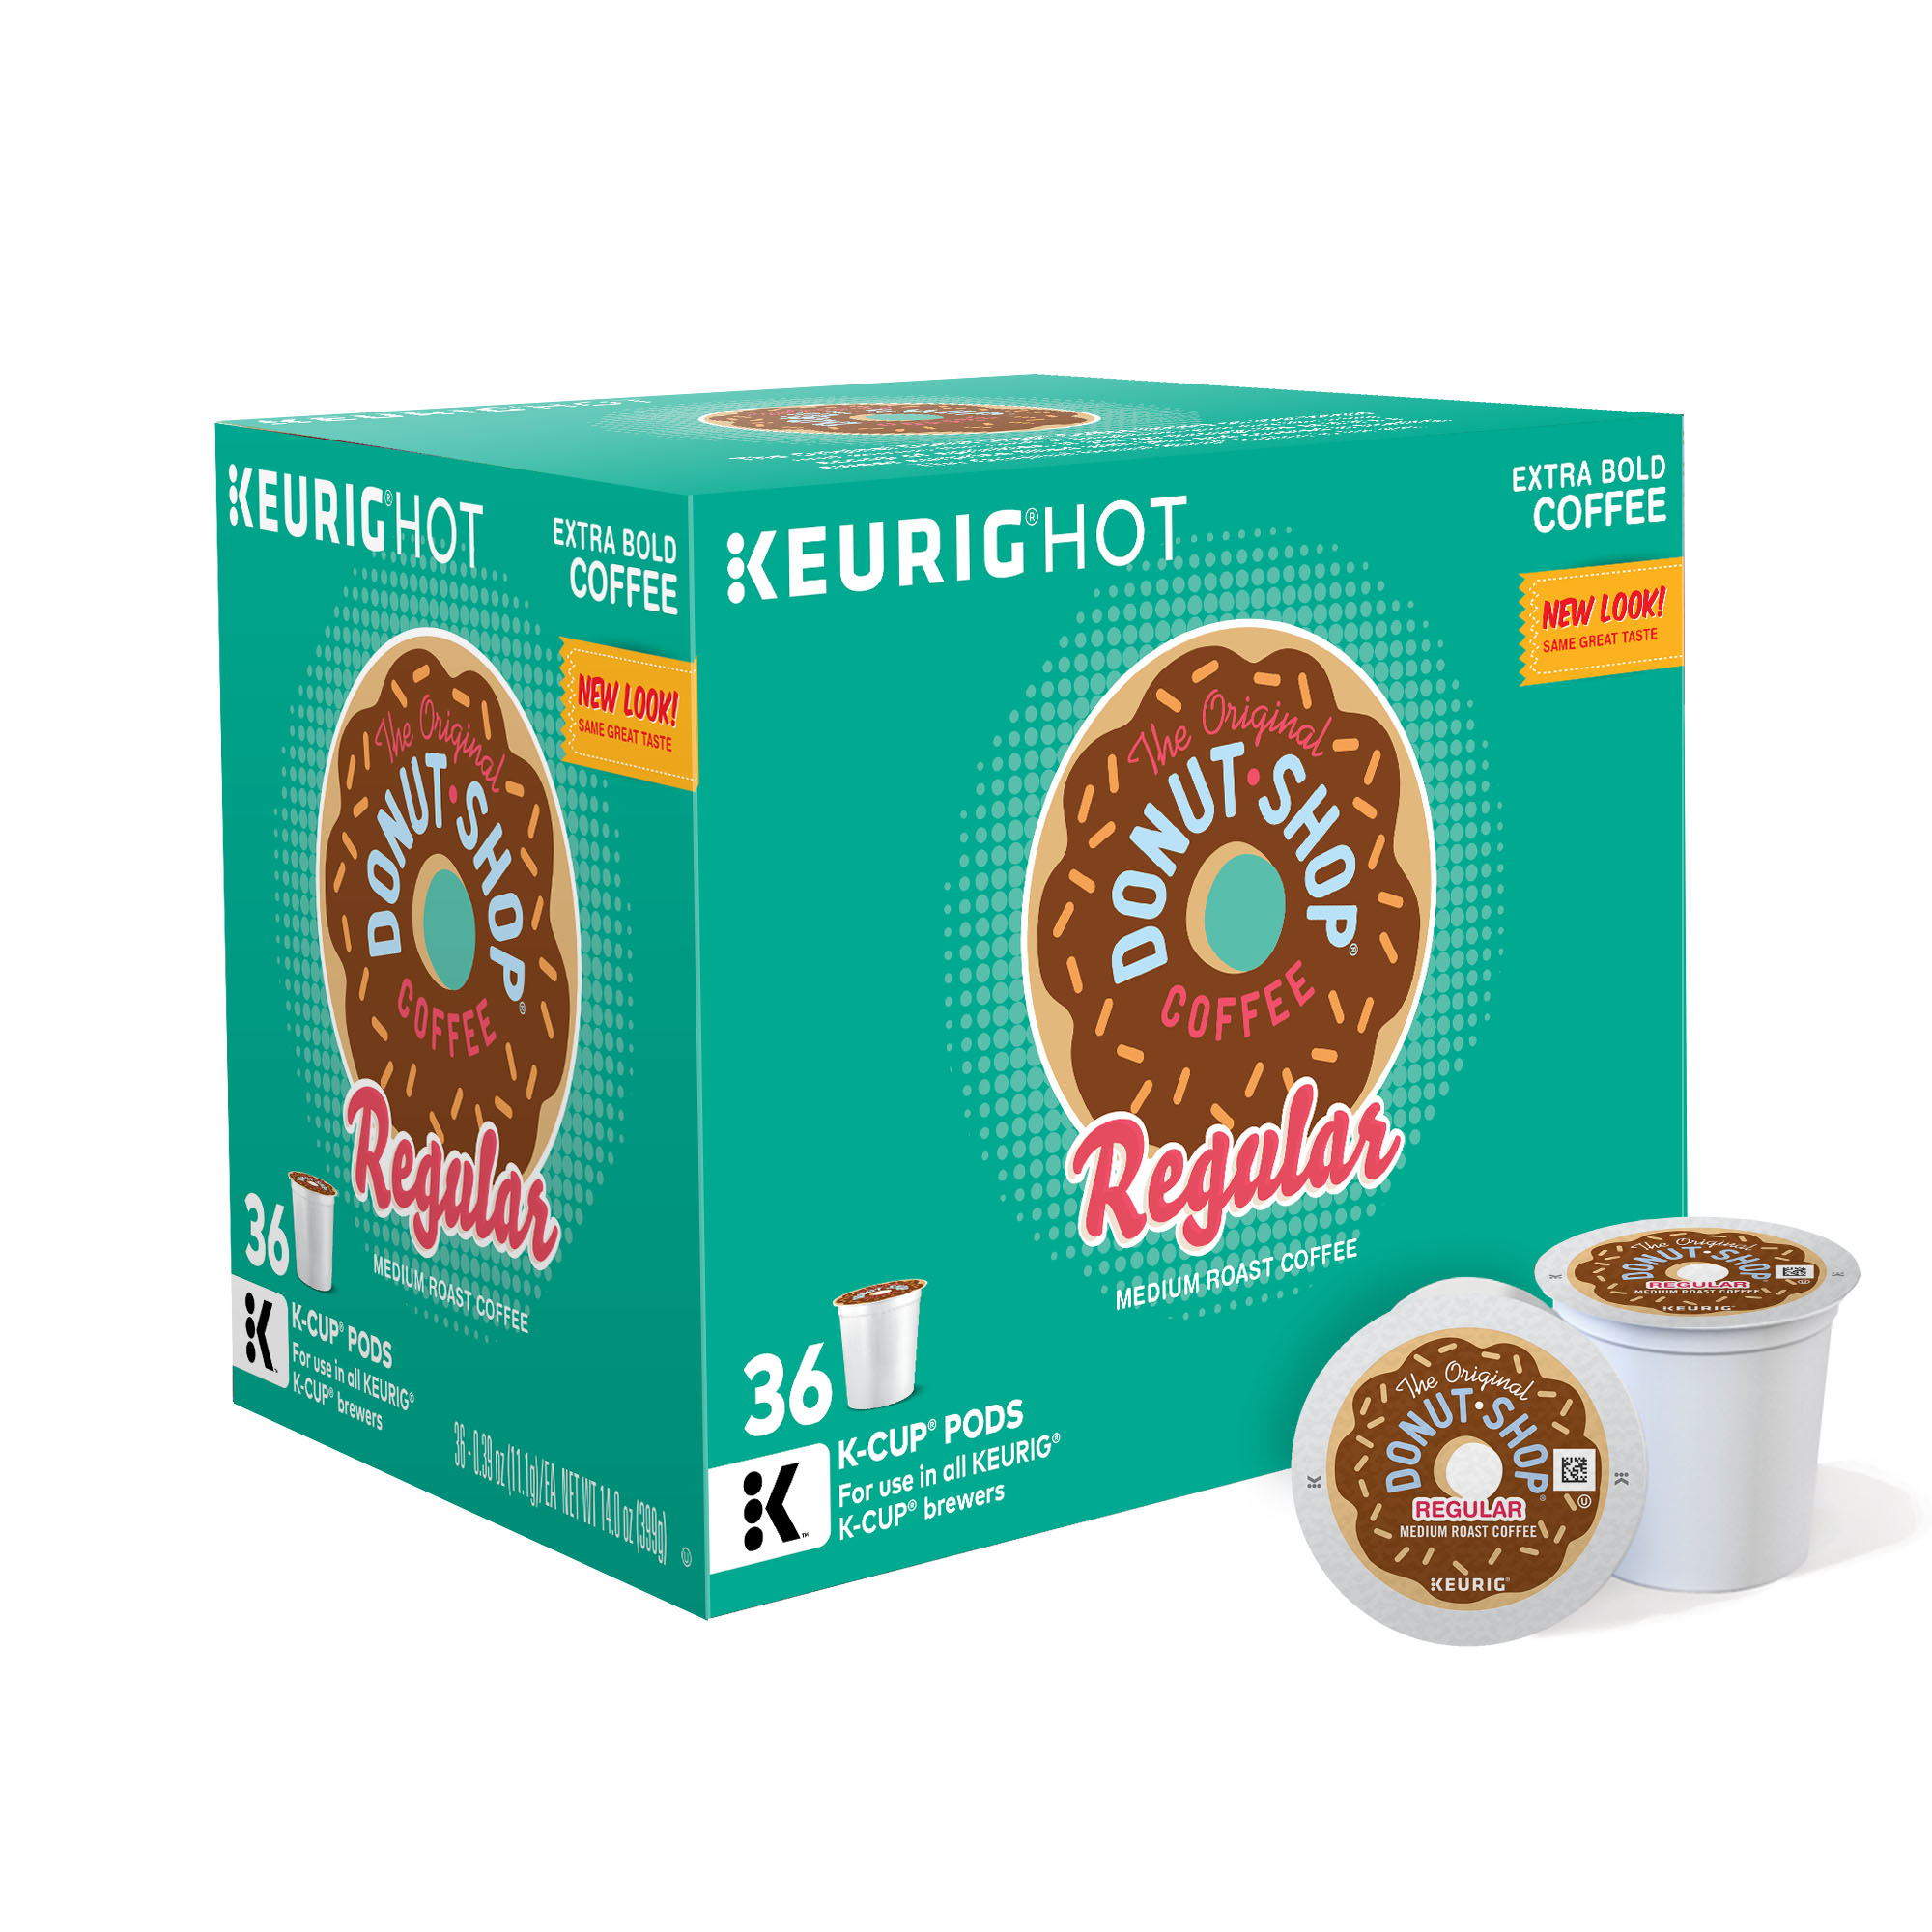 The Original Donut Shop Medium Roast Coffee, 36 Ct K-Cups